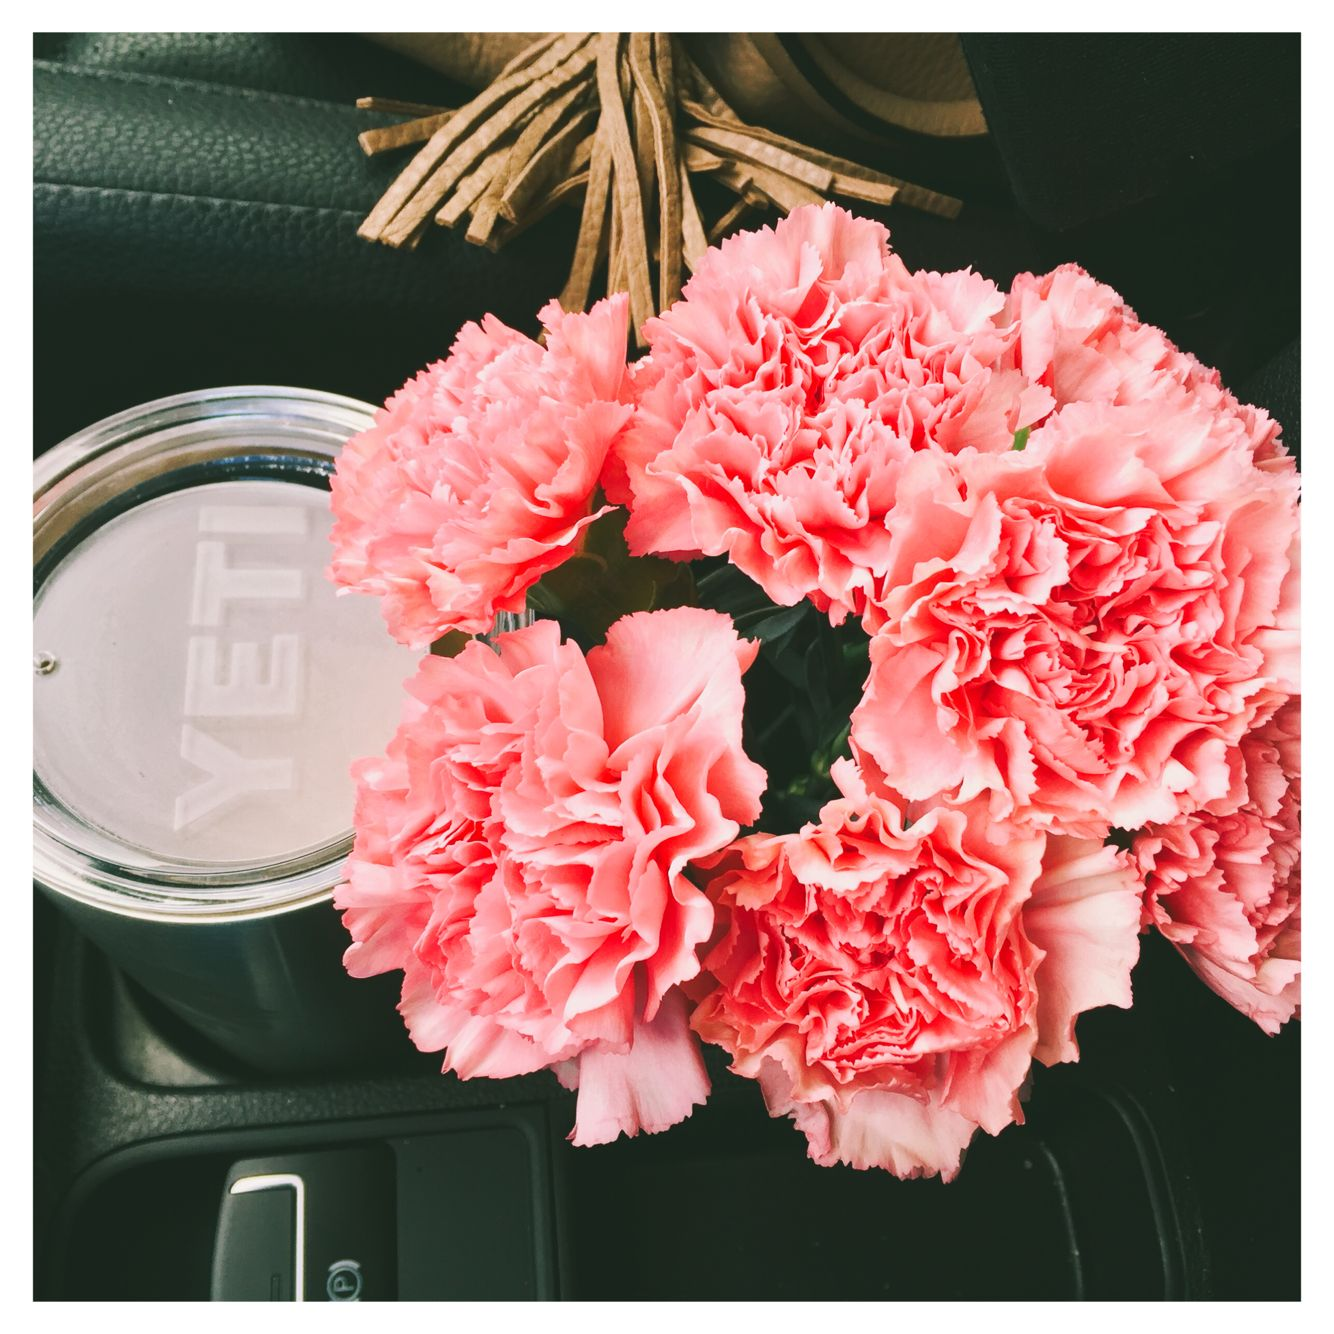 Carnations and coffee.